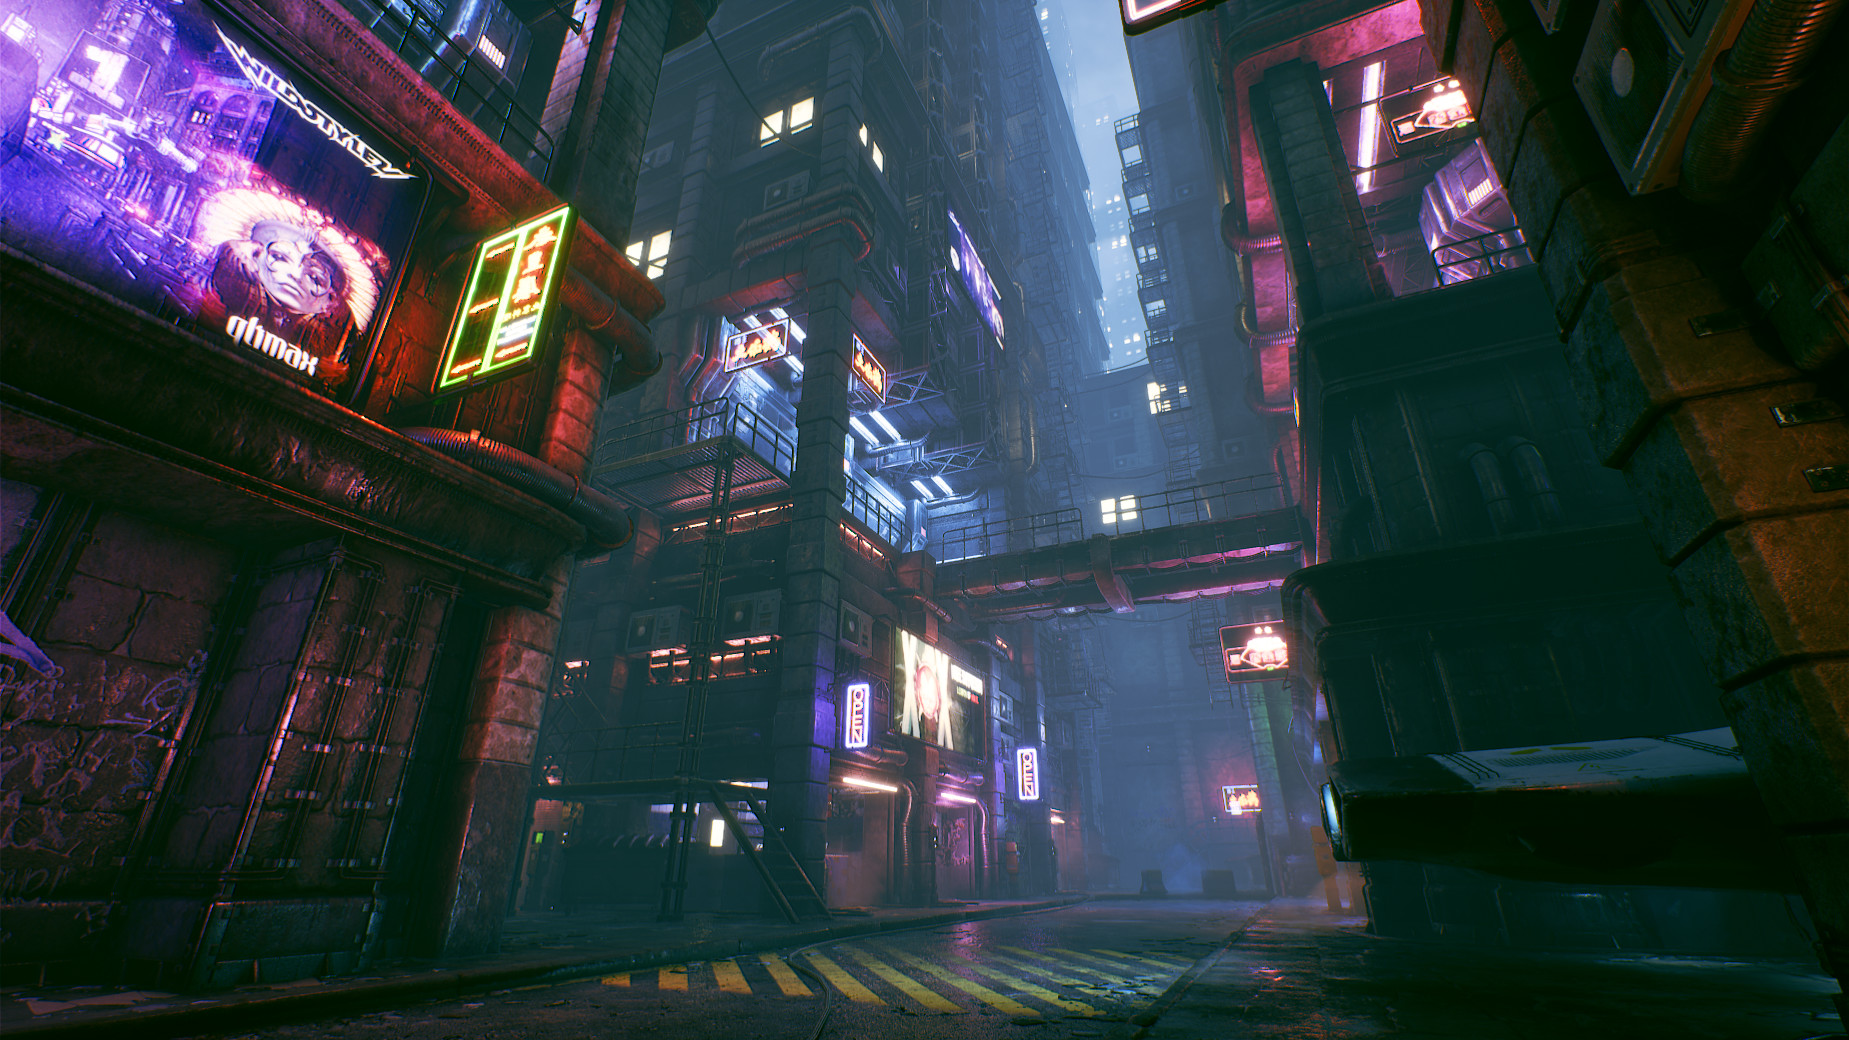 ArtStation - Cyberpunk City Alley - Unreal Engine 4, Michal Baca